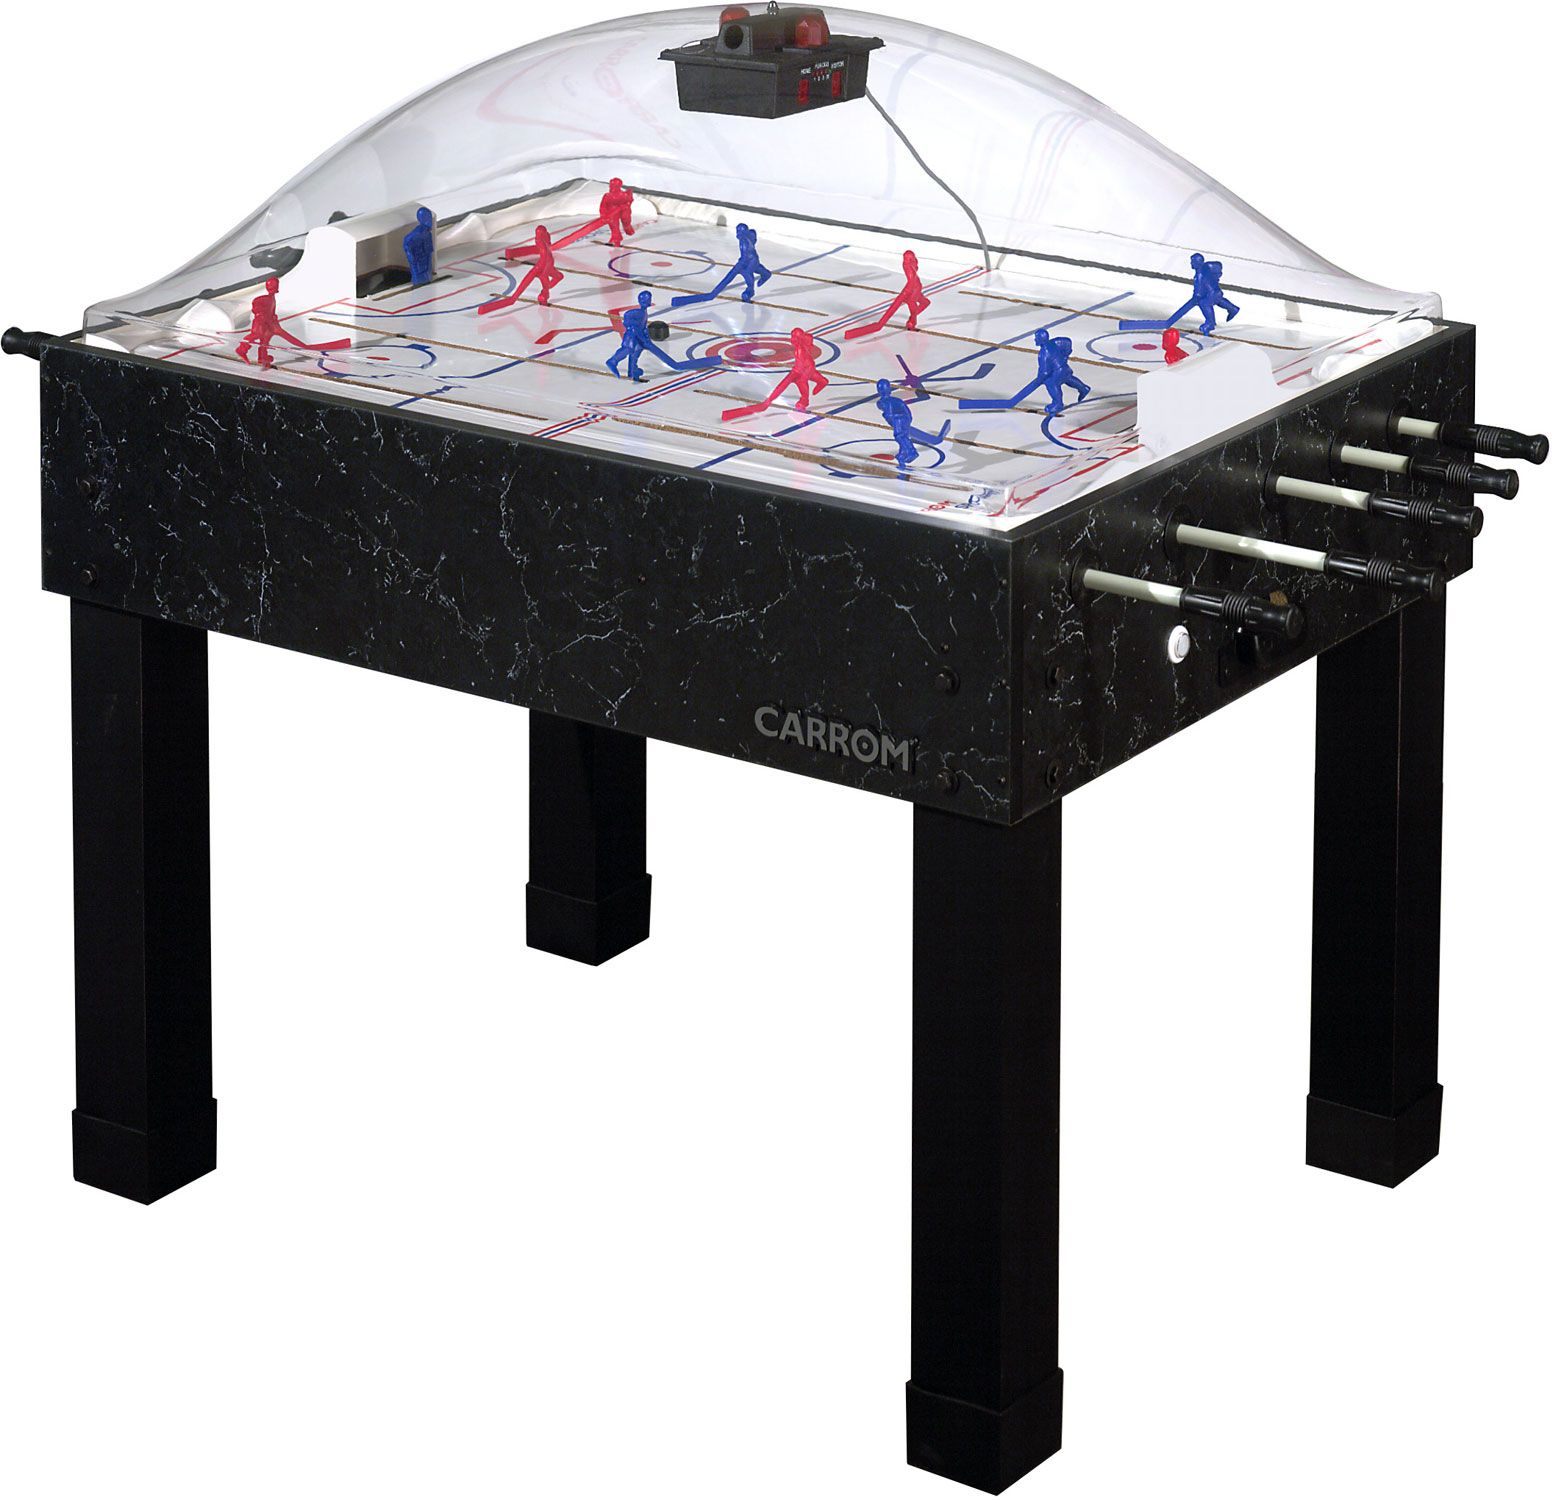 air hockey tables for sale dick's sporting goods  at virtualis.co